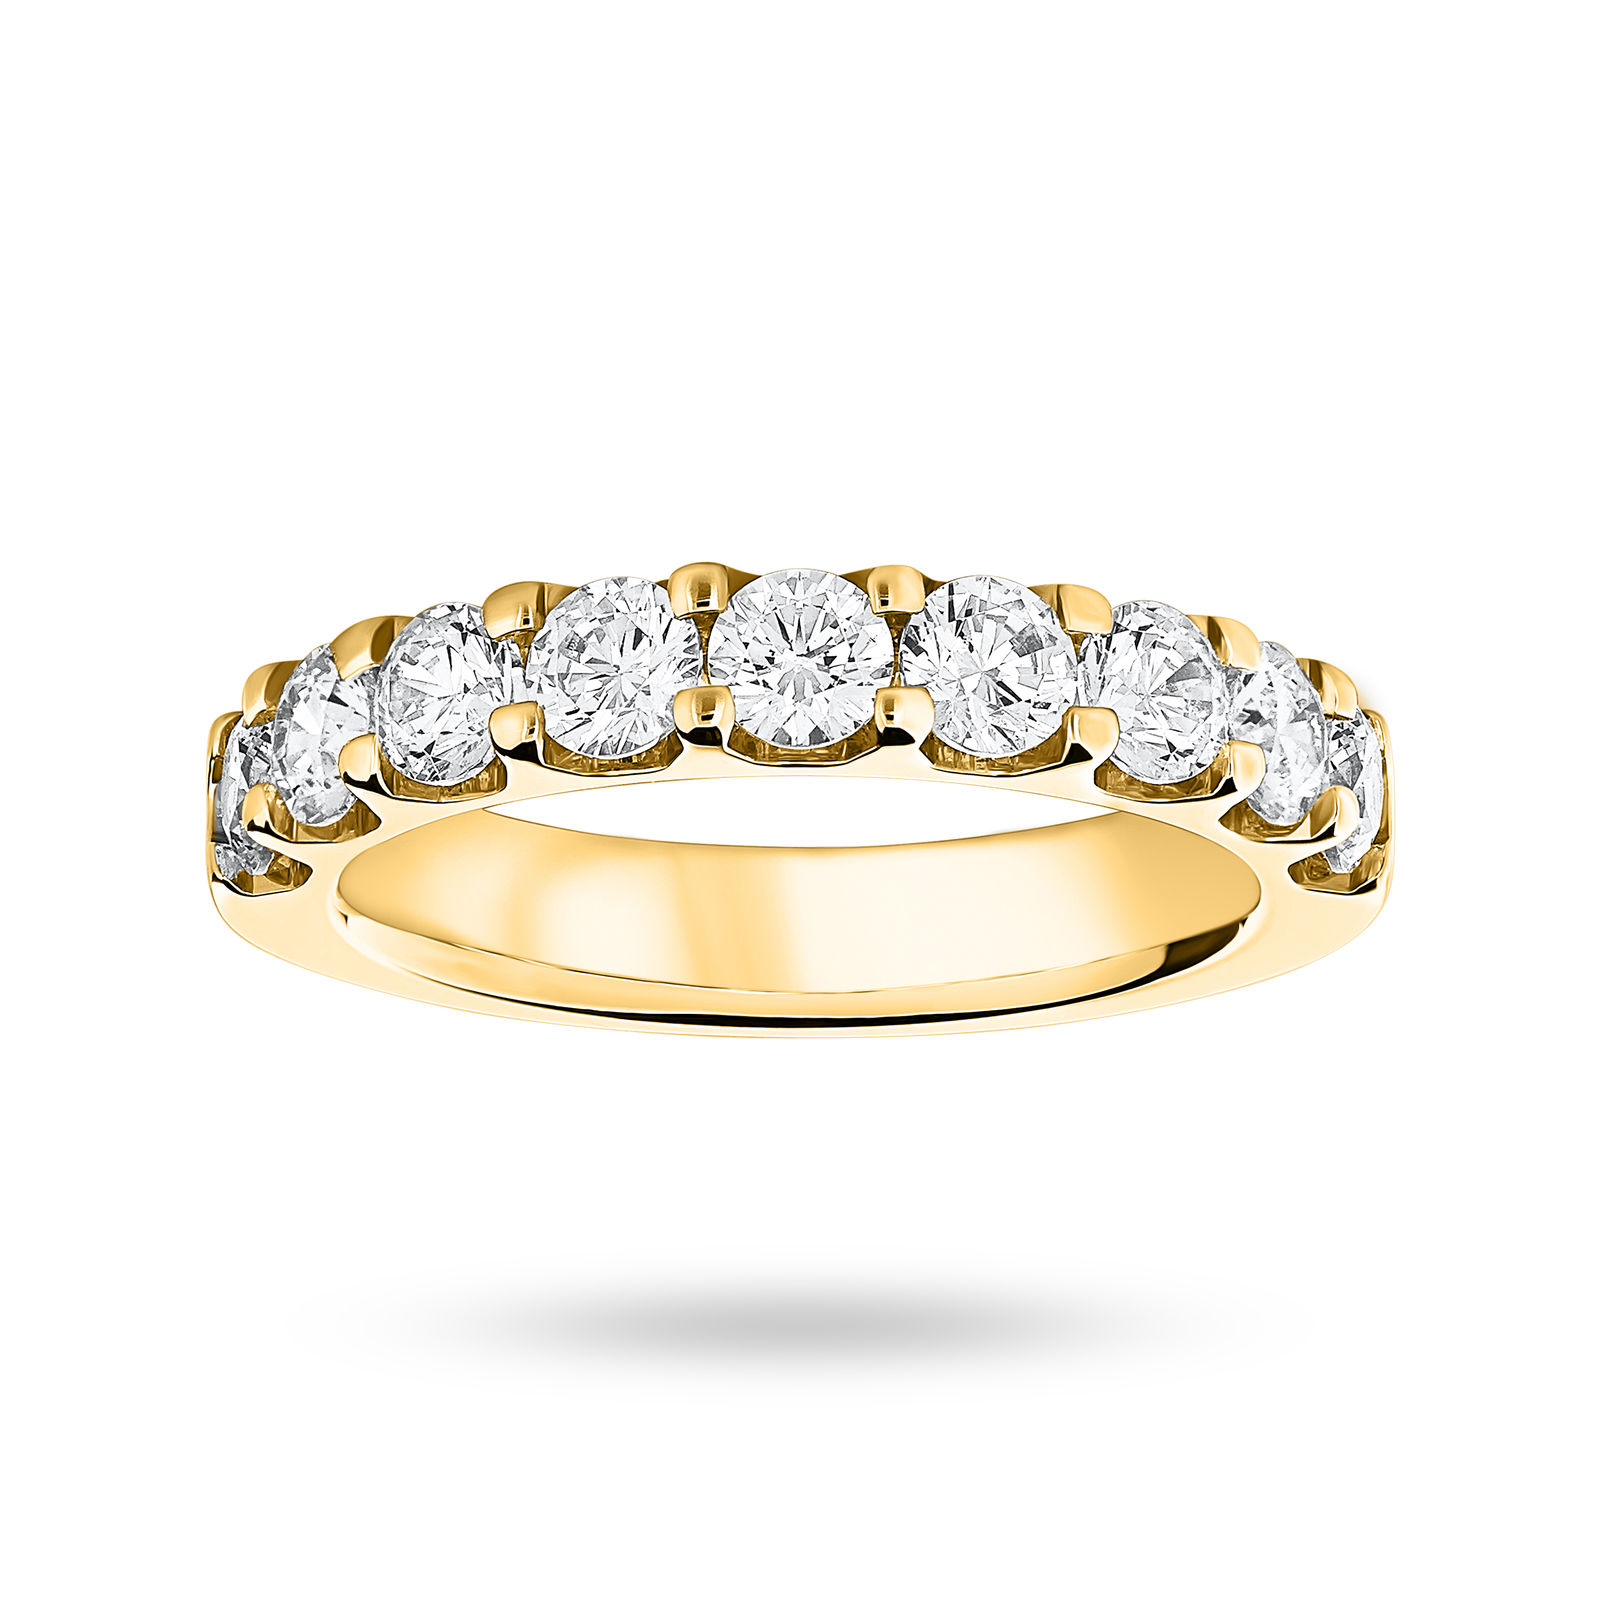 18 Carat Yellow Gold 1.45 Carat Brilliant Cut Half Eternity